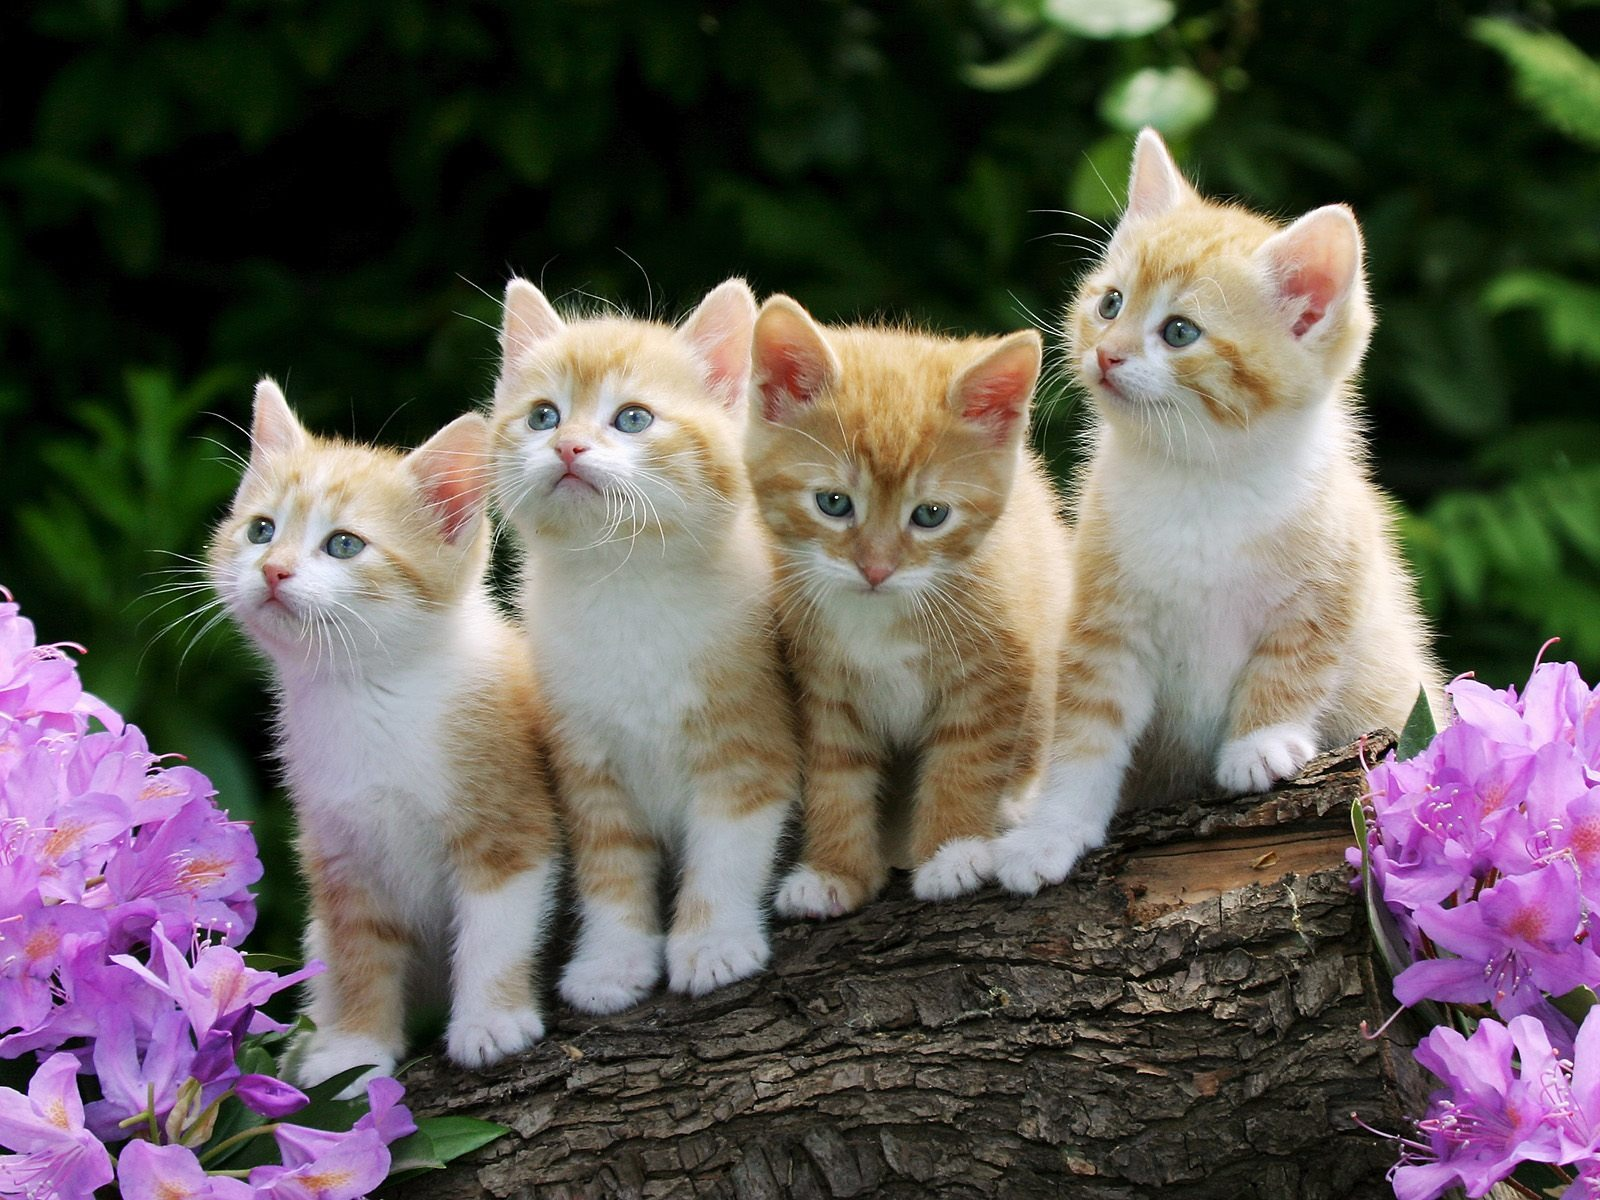 Kittens wallpaper cats animals wallpapers in jpg format for free kittens wallpaper cats animals wallpapers altavistaventures Choice Image